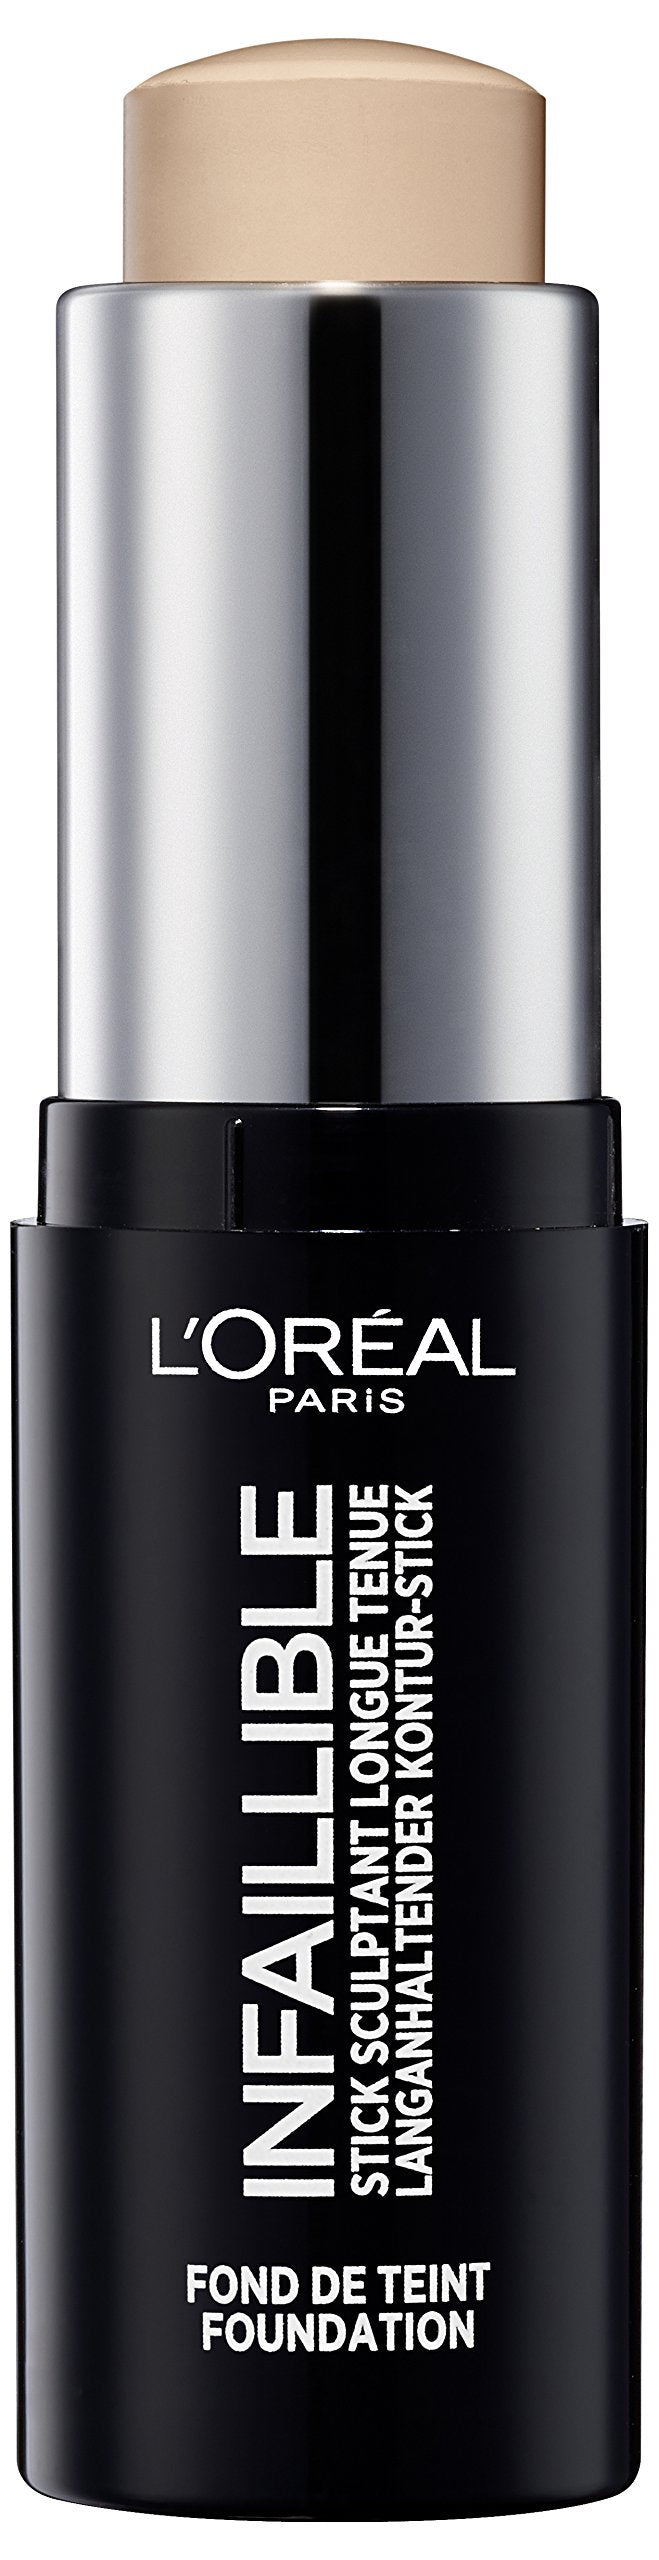 Loreal 9G Infaillible Foundation Longwear Shaping Stick 180 Radiant Beige